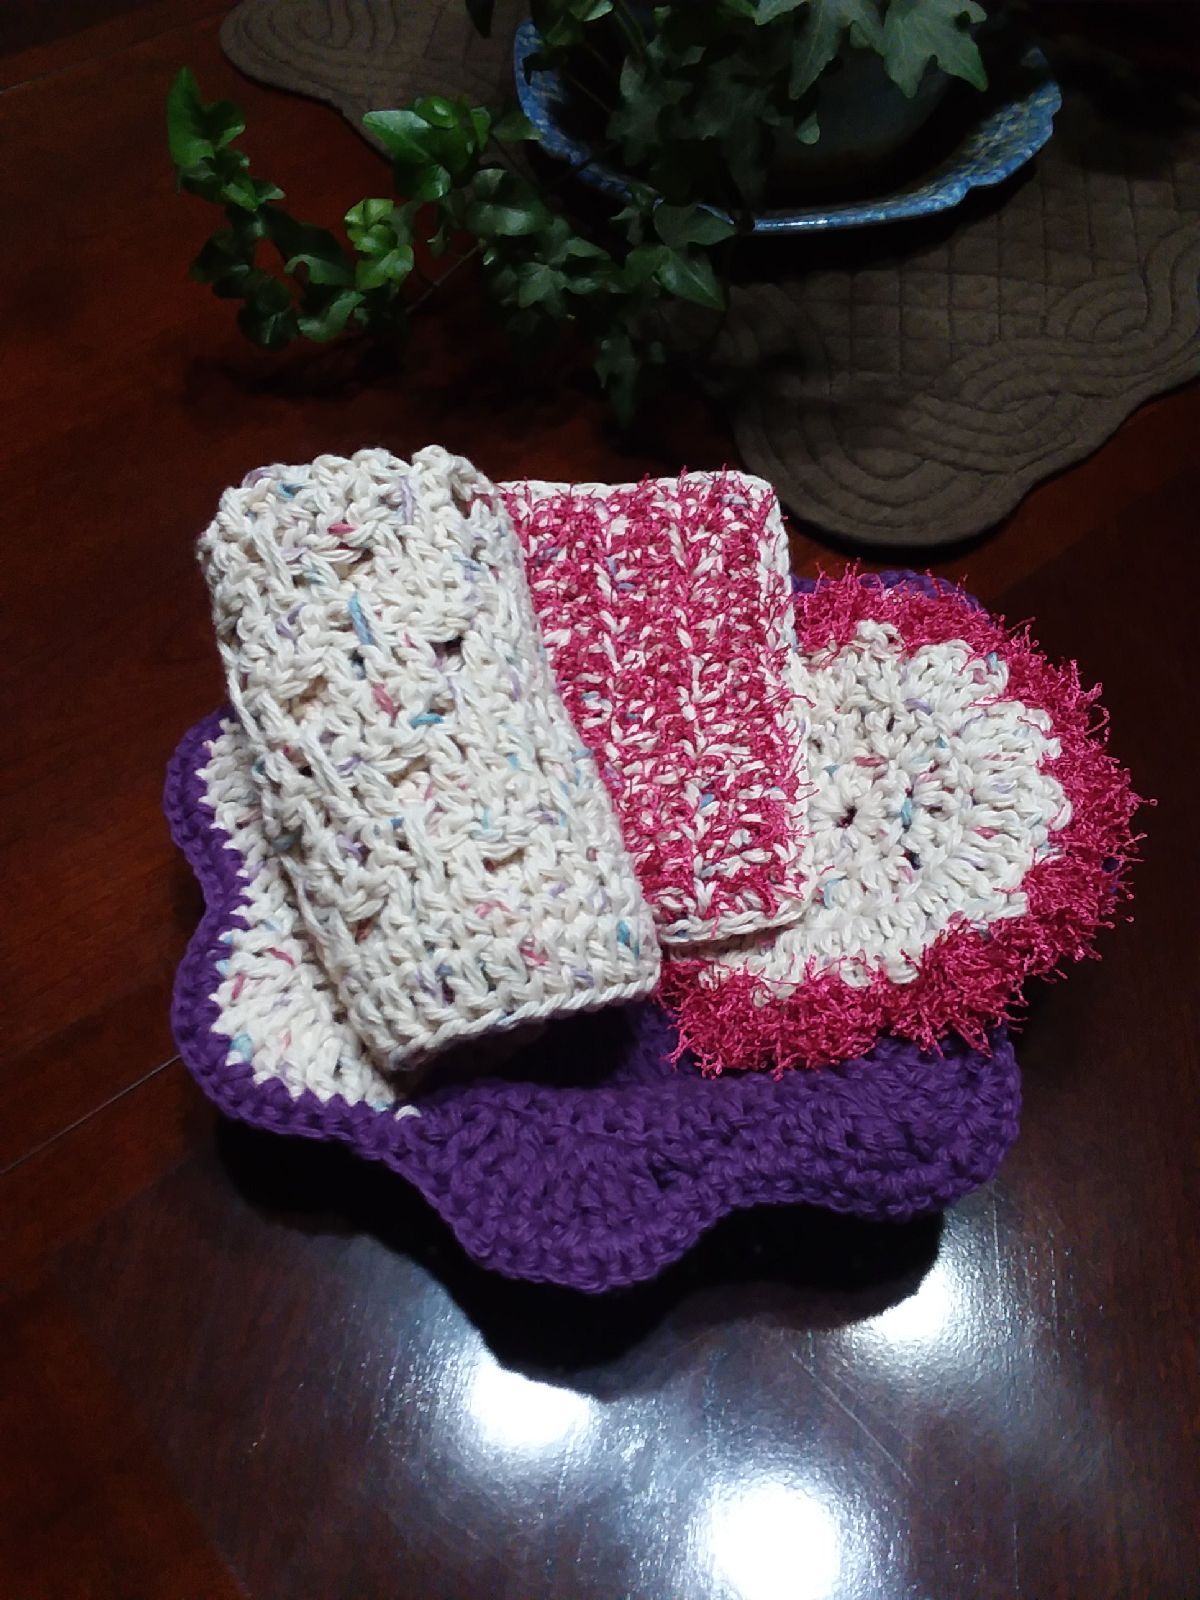 Crocheted microwave bowl cozy